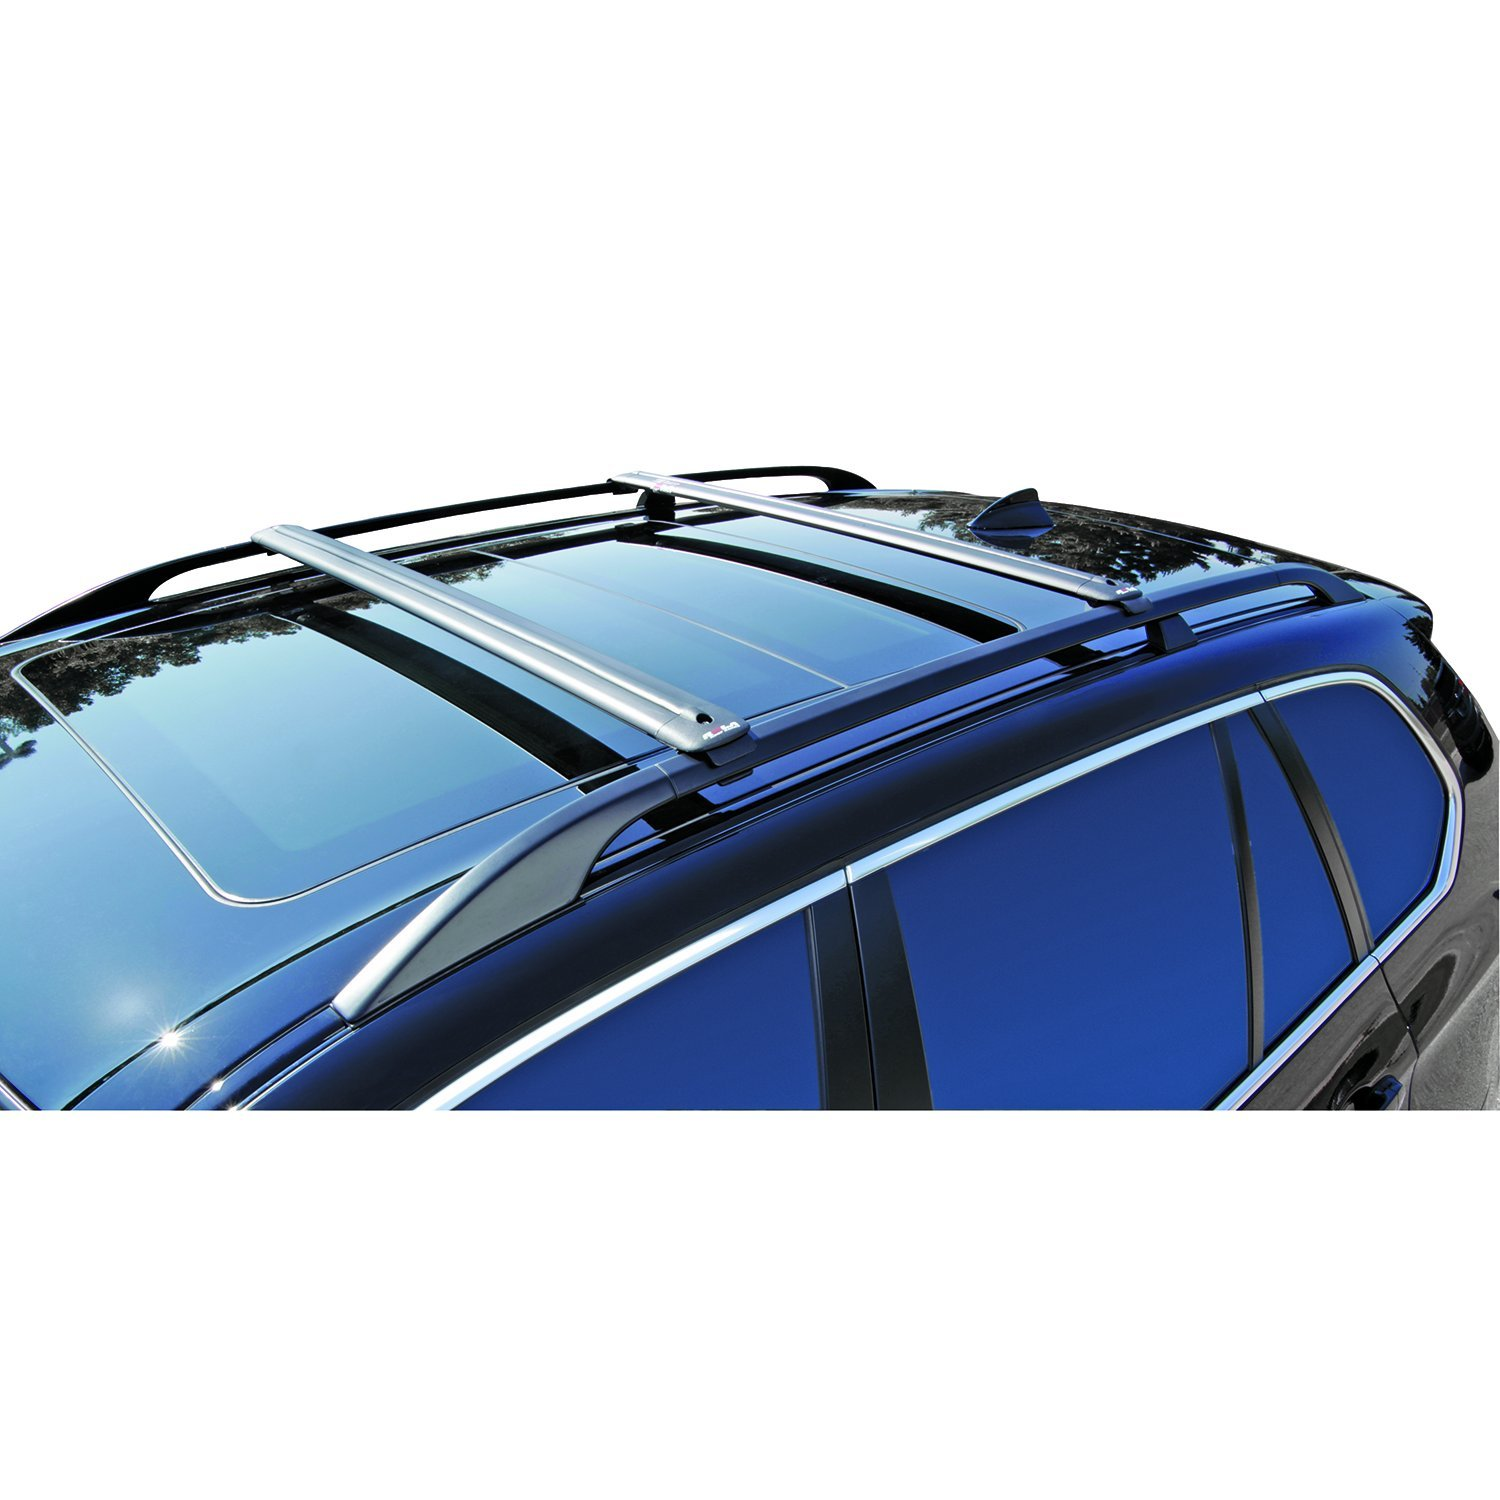 ROLA 59828 Removable Rail Bar RB Series Roof Rack For BMW